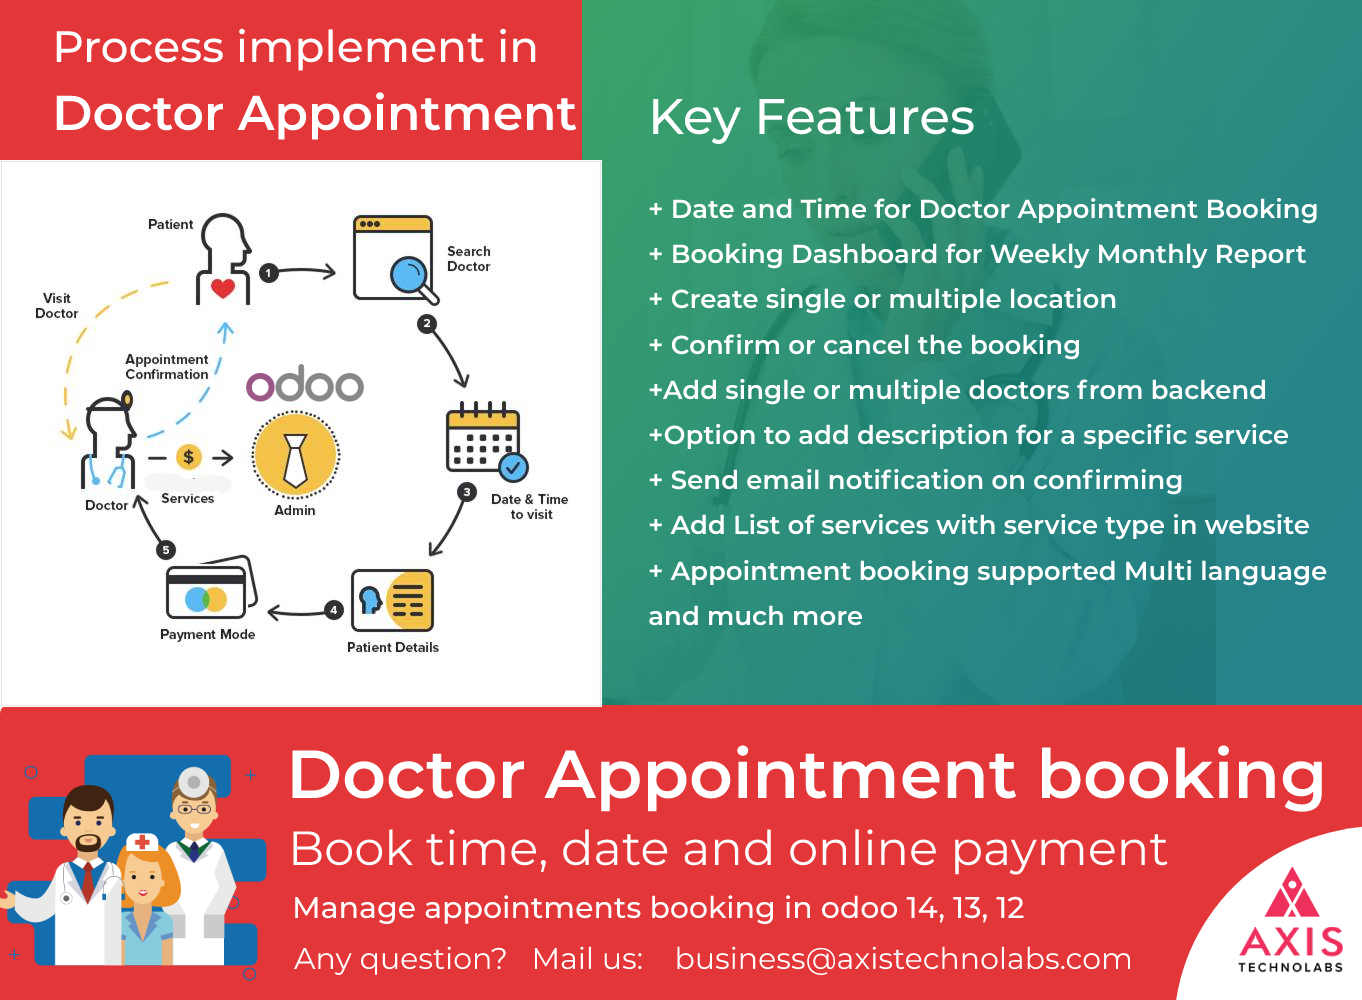 Doctor Appointment Booking in odoo, Clinic Odoo Website Appointment Book, Doctor calendar booking slot, Patient appointment booking and payment online